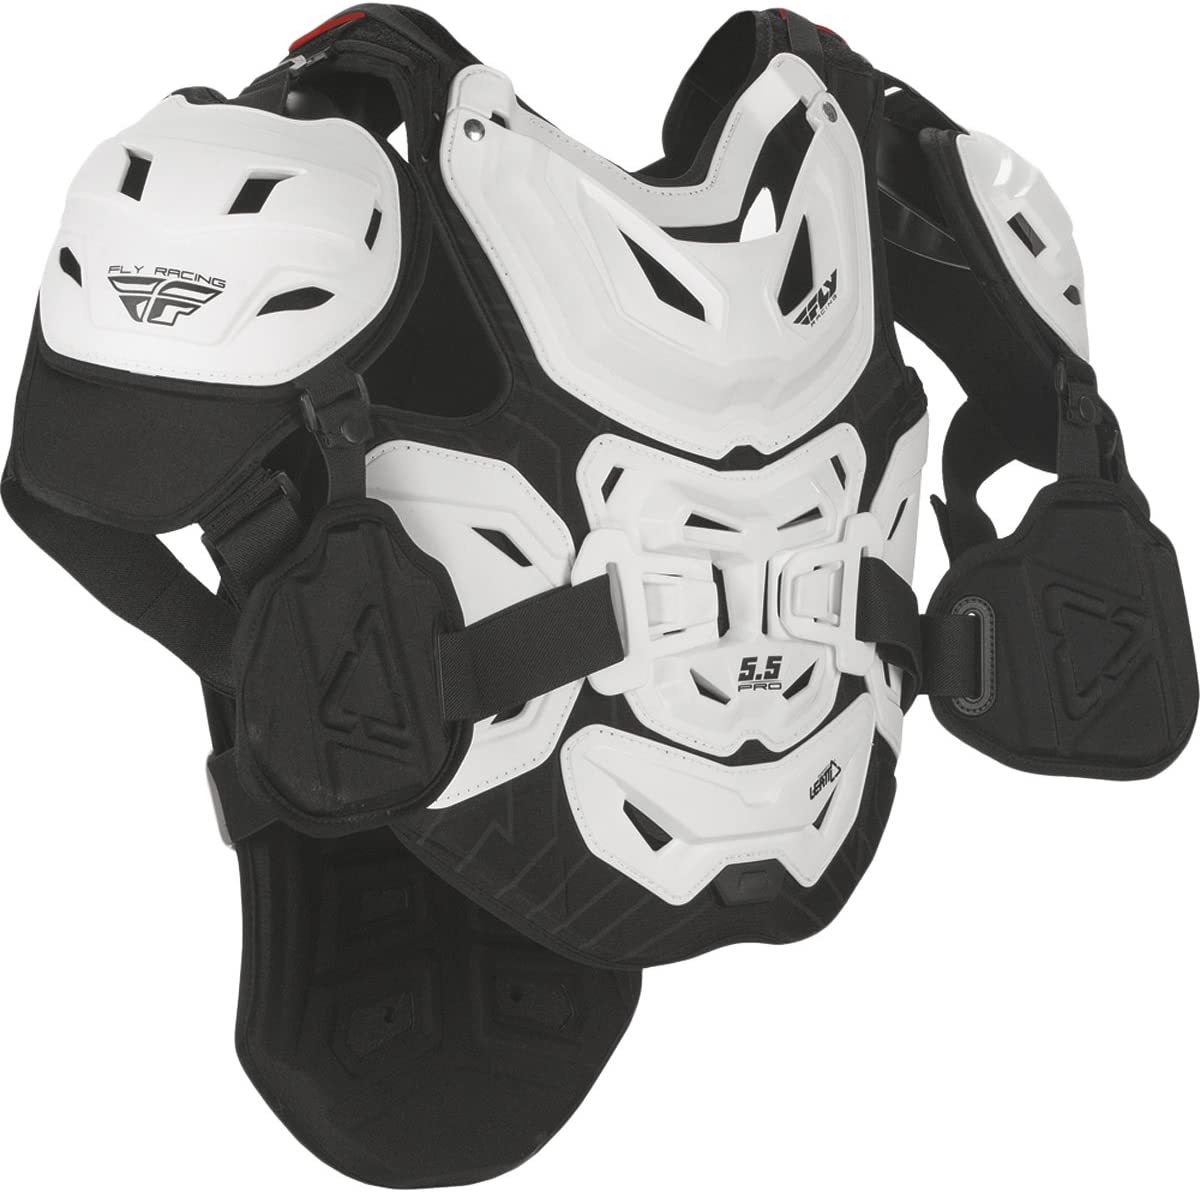 Leatt Adult 5.5 Pro Chest Protector MX Offroad Dirtbike ATV